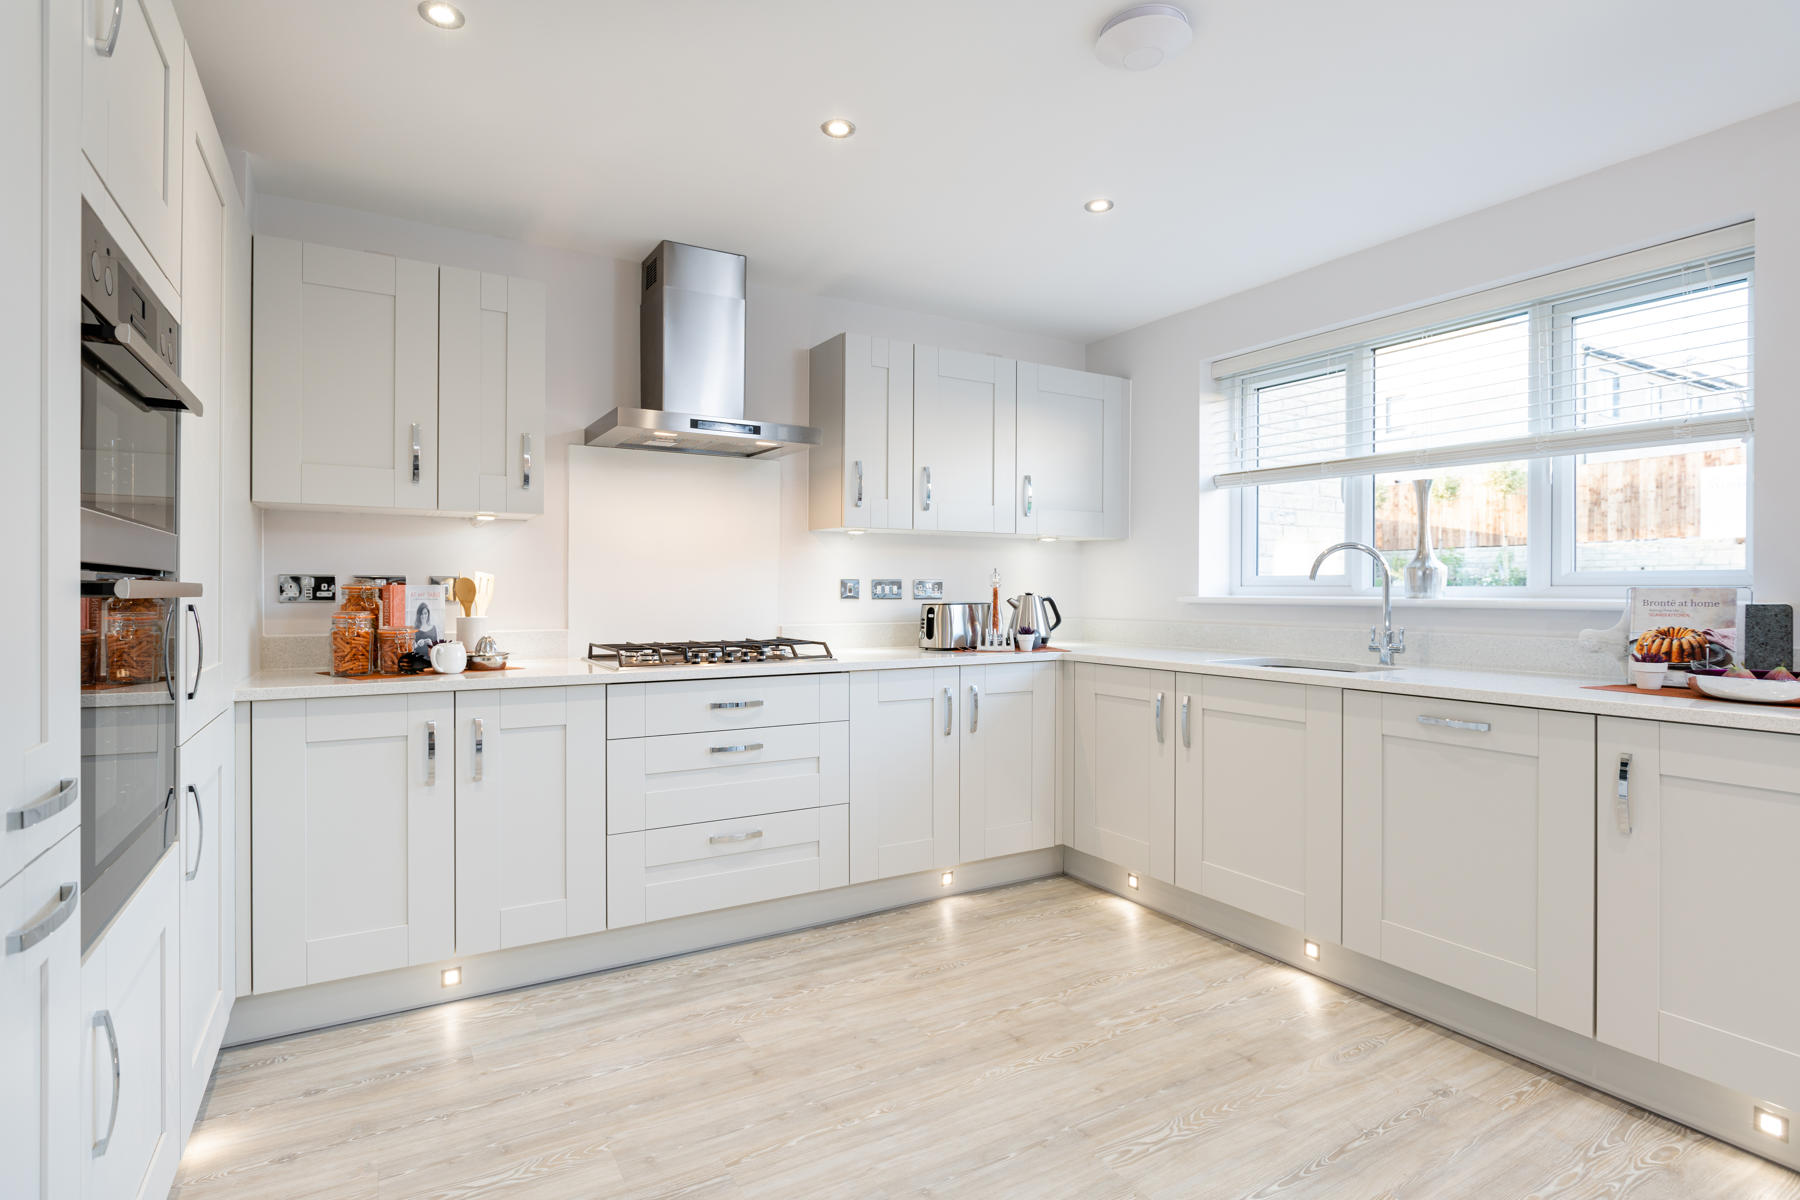 Haddenham kitchen  - Crosfield Park